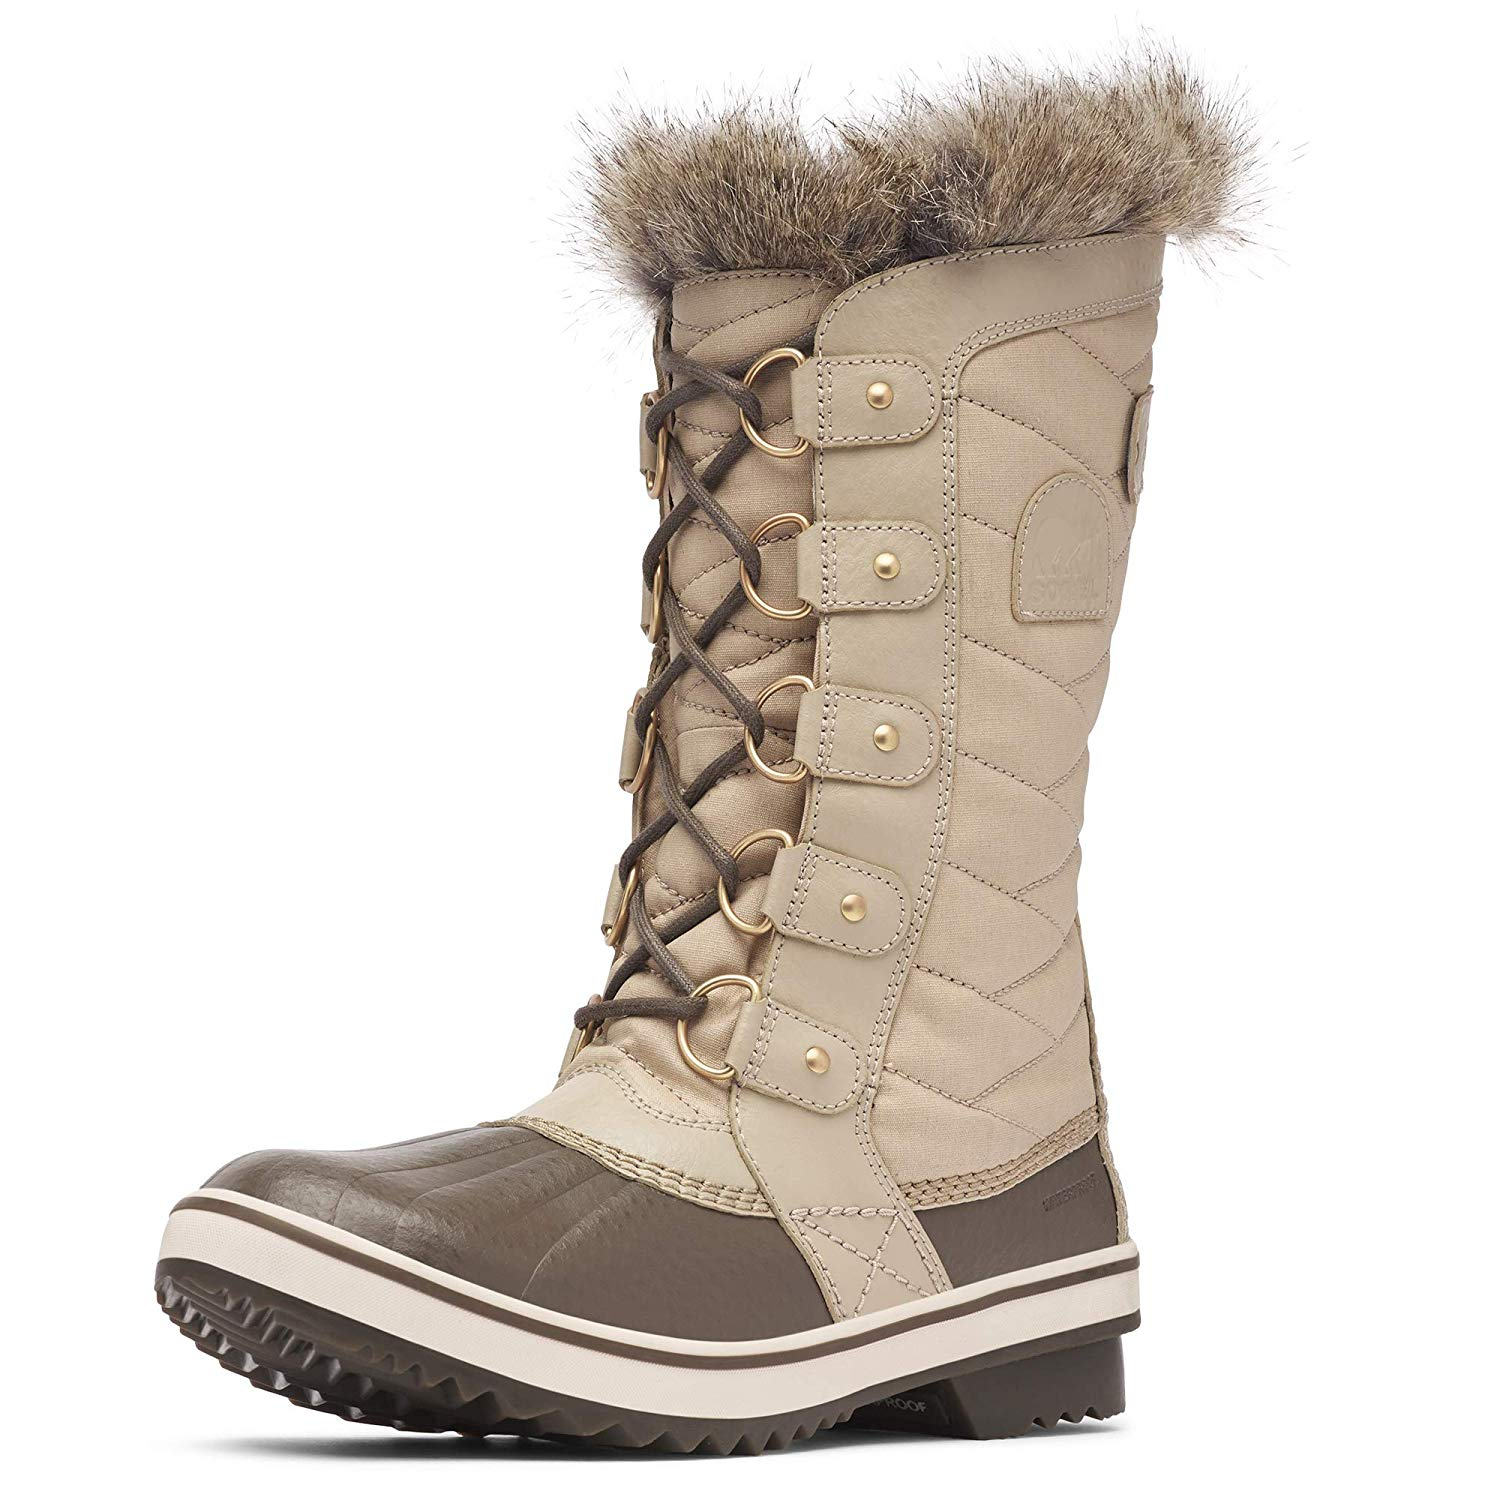 Sorel Tofino Ii Mid Calf Boot Ancient Fossil